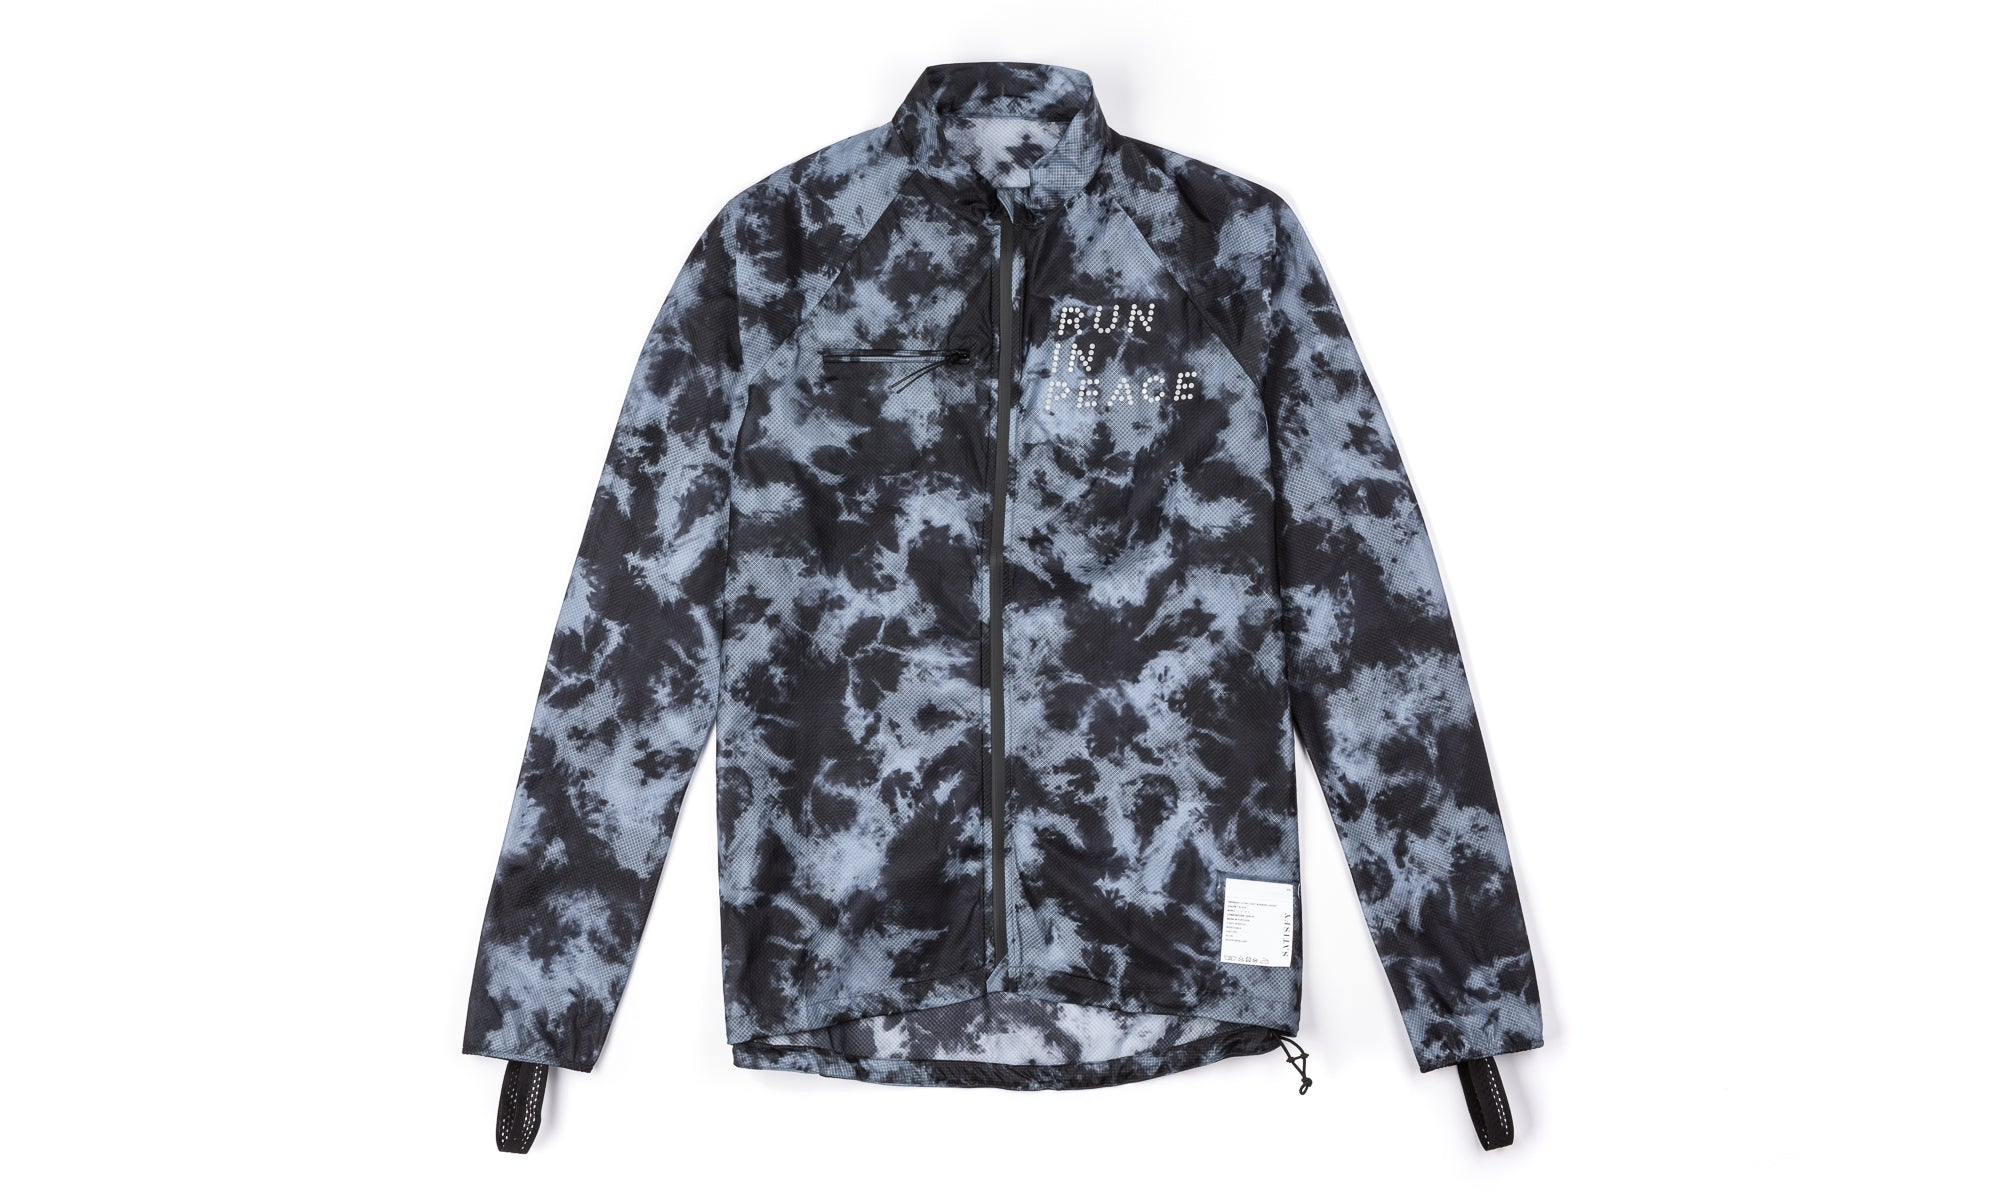 Ultra-Light Running Jacket - Tie-Dye - Front